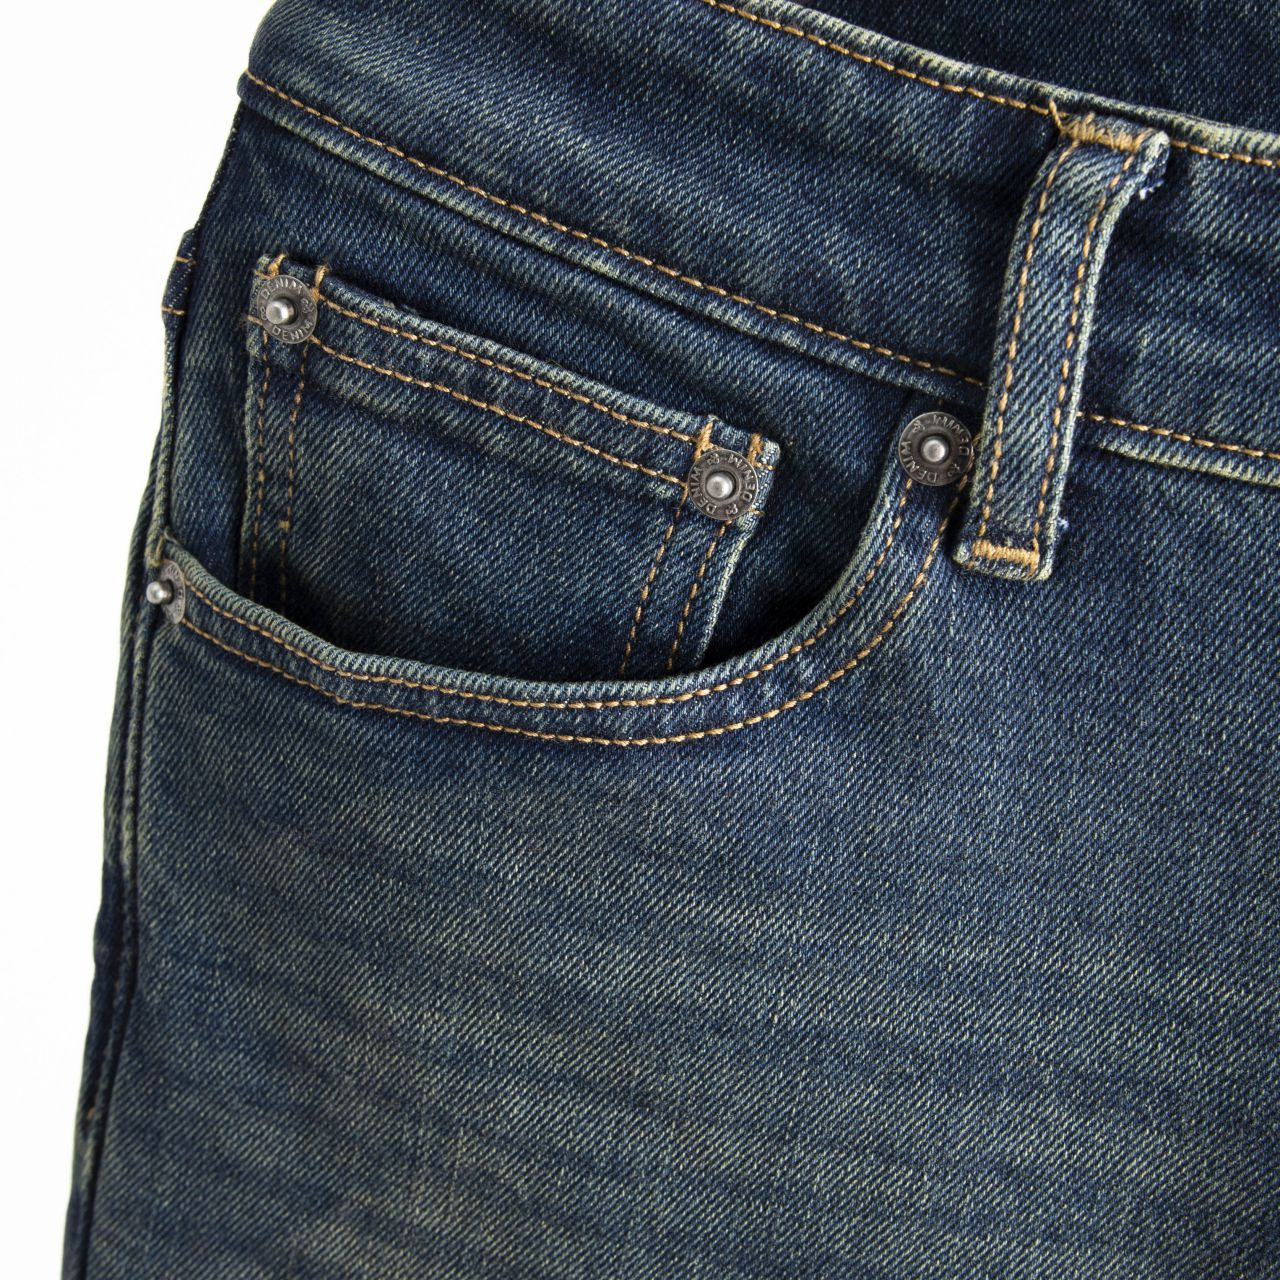 SP346 - Quần Jeans Skinny Fit The 90S